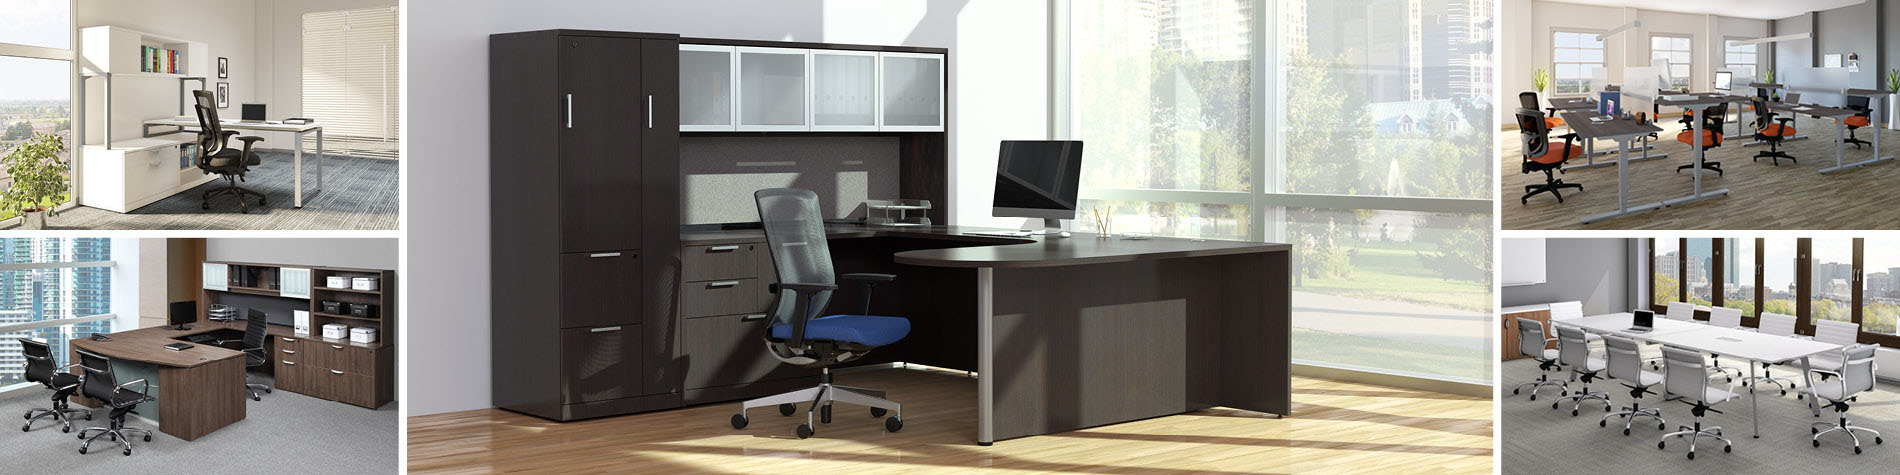 Source Furniture Brampton Office Furniture Great Pricing On Quality Office Furniture Across